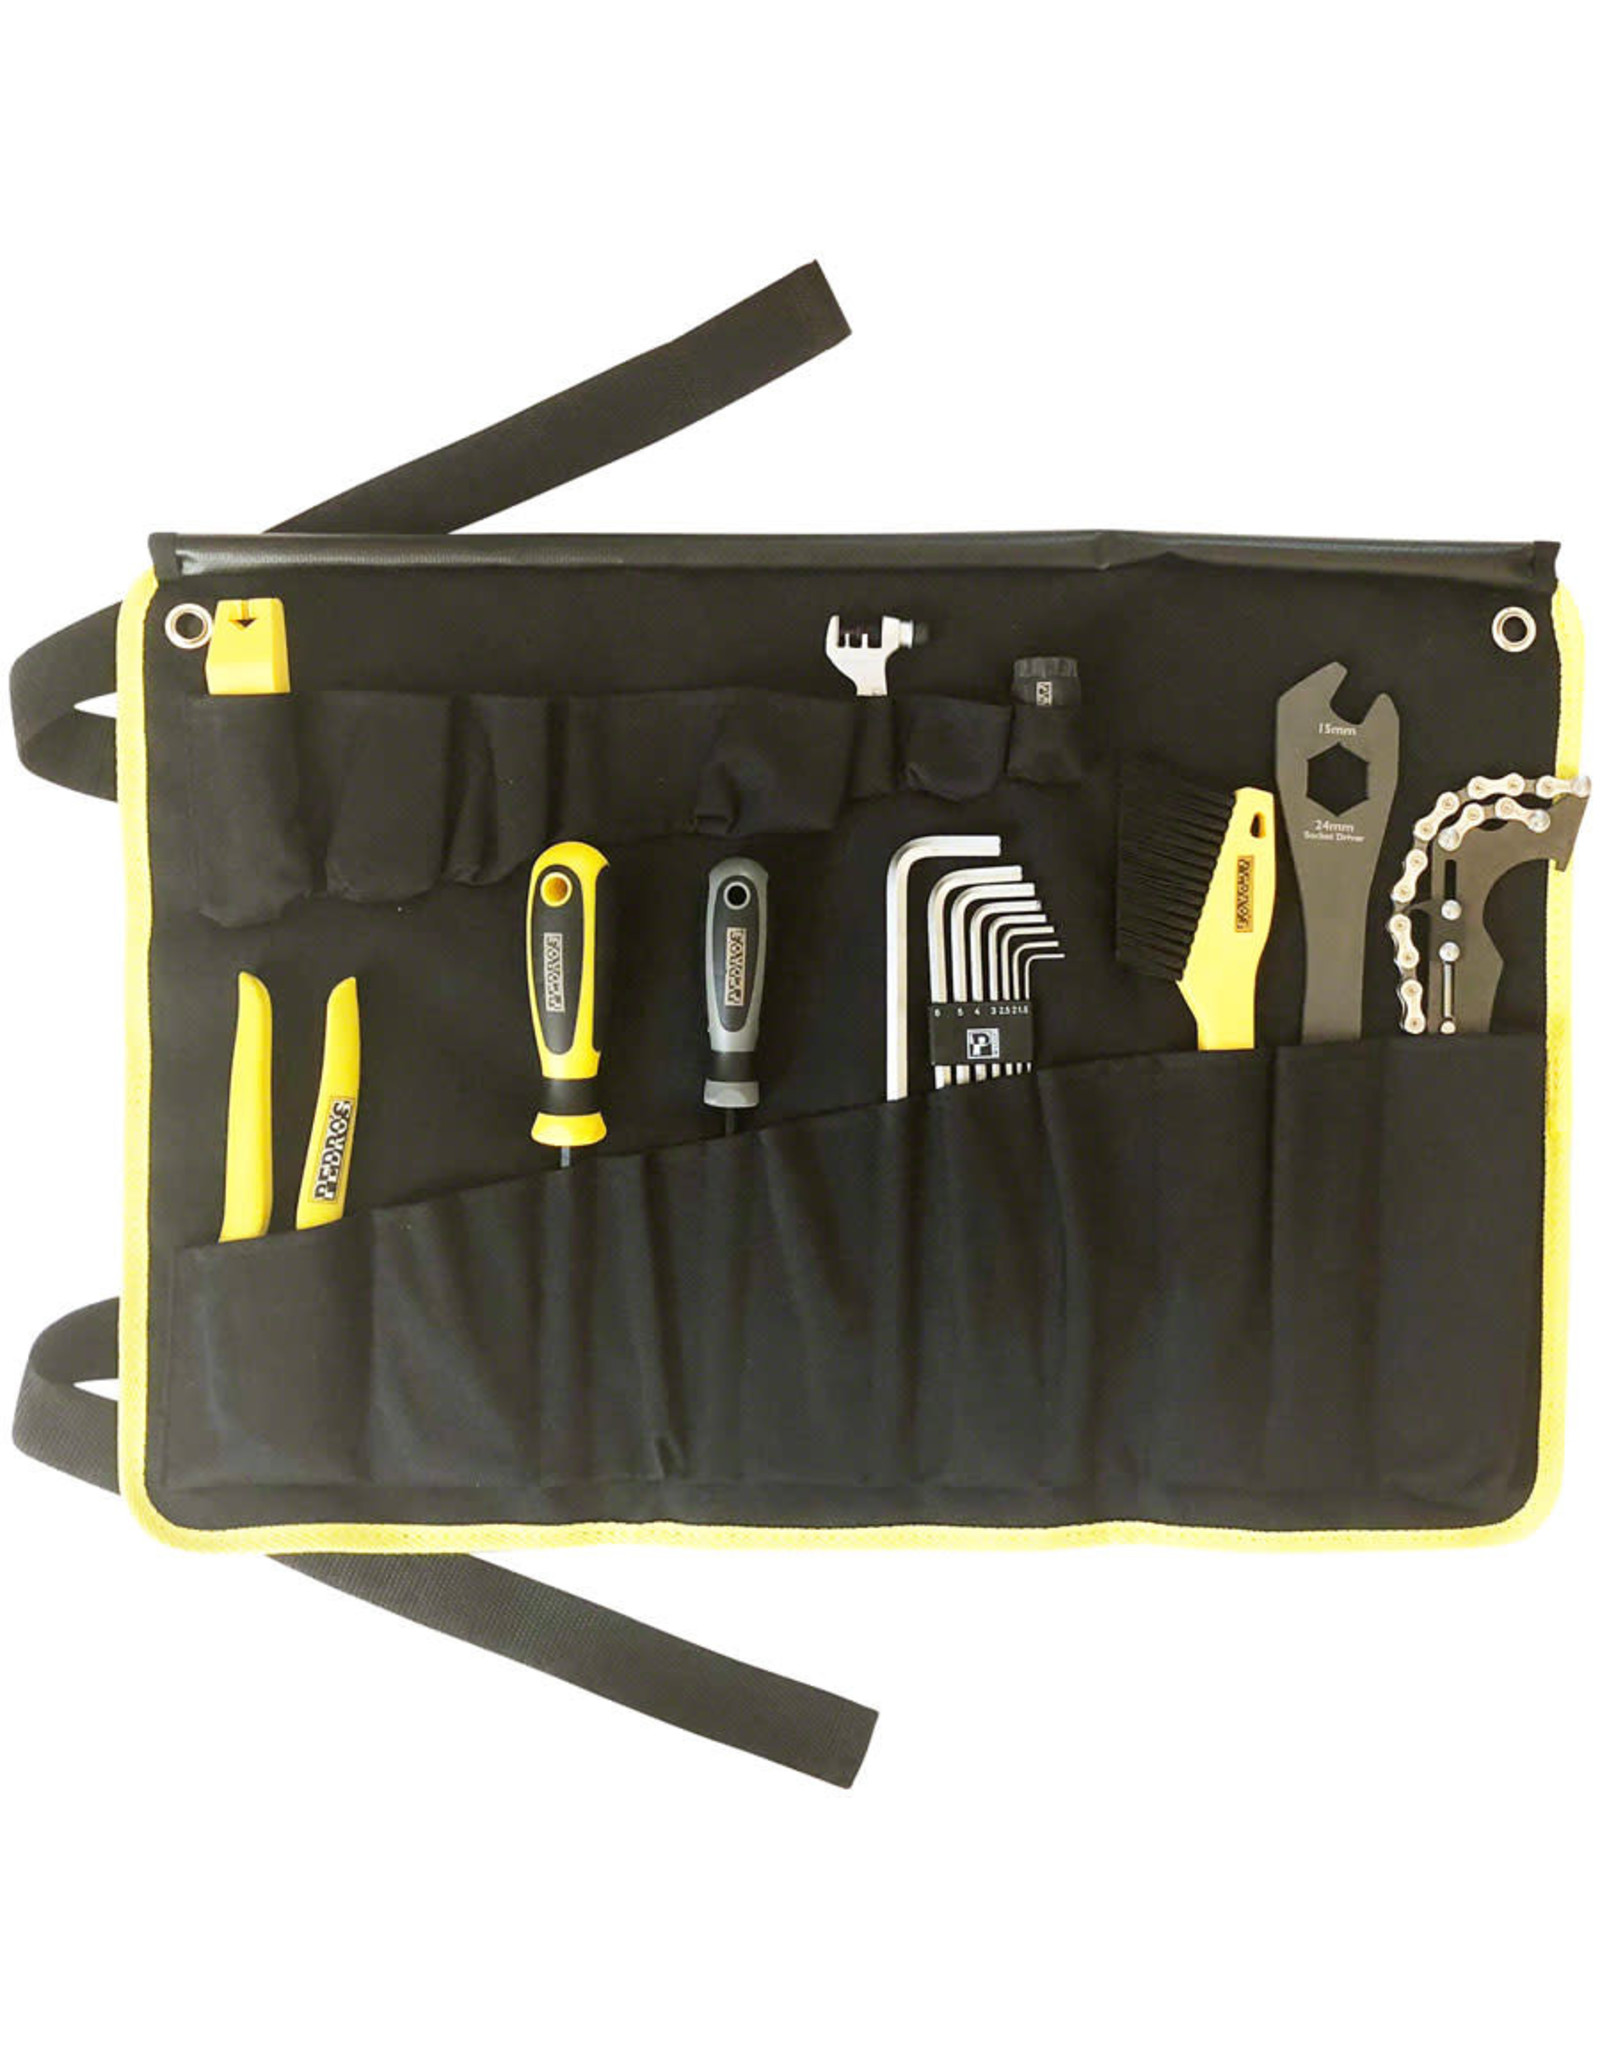 Pedro's Pedro's Starter Tool Kit 1.1. Including 19 Tools And Tool Wrap, Black